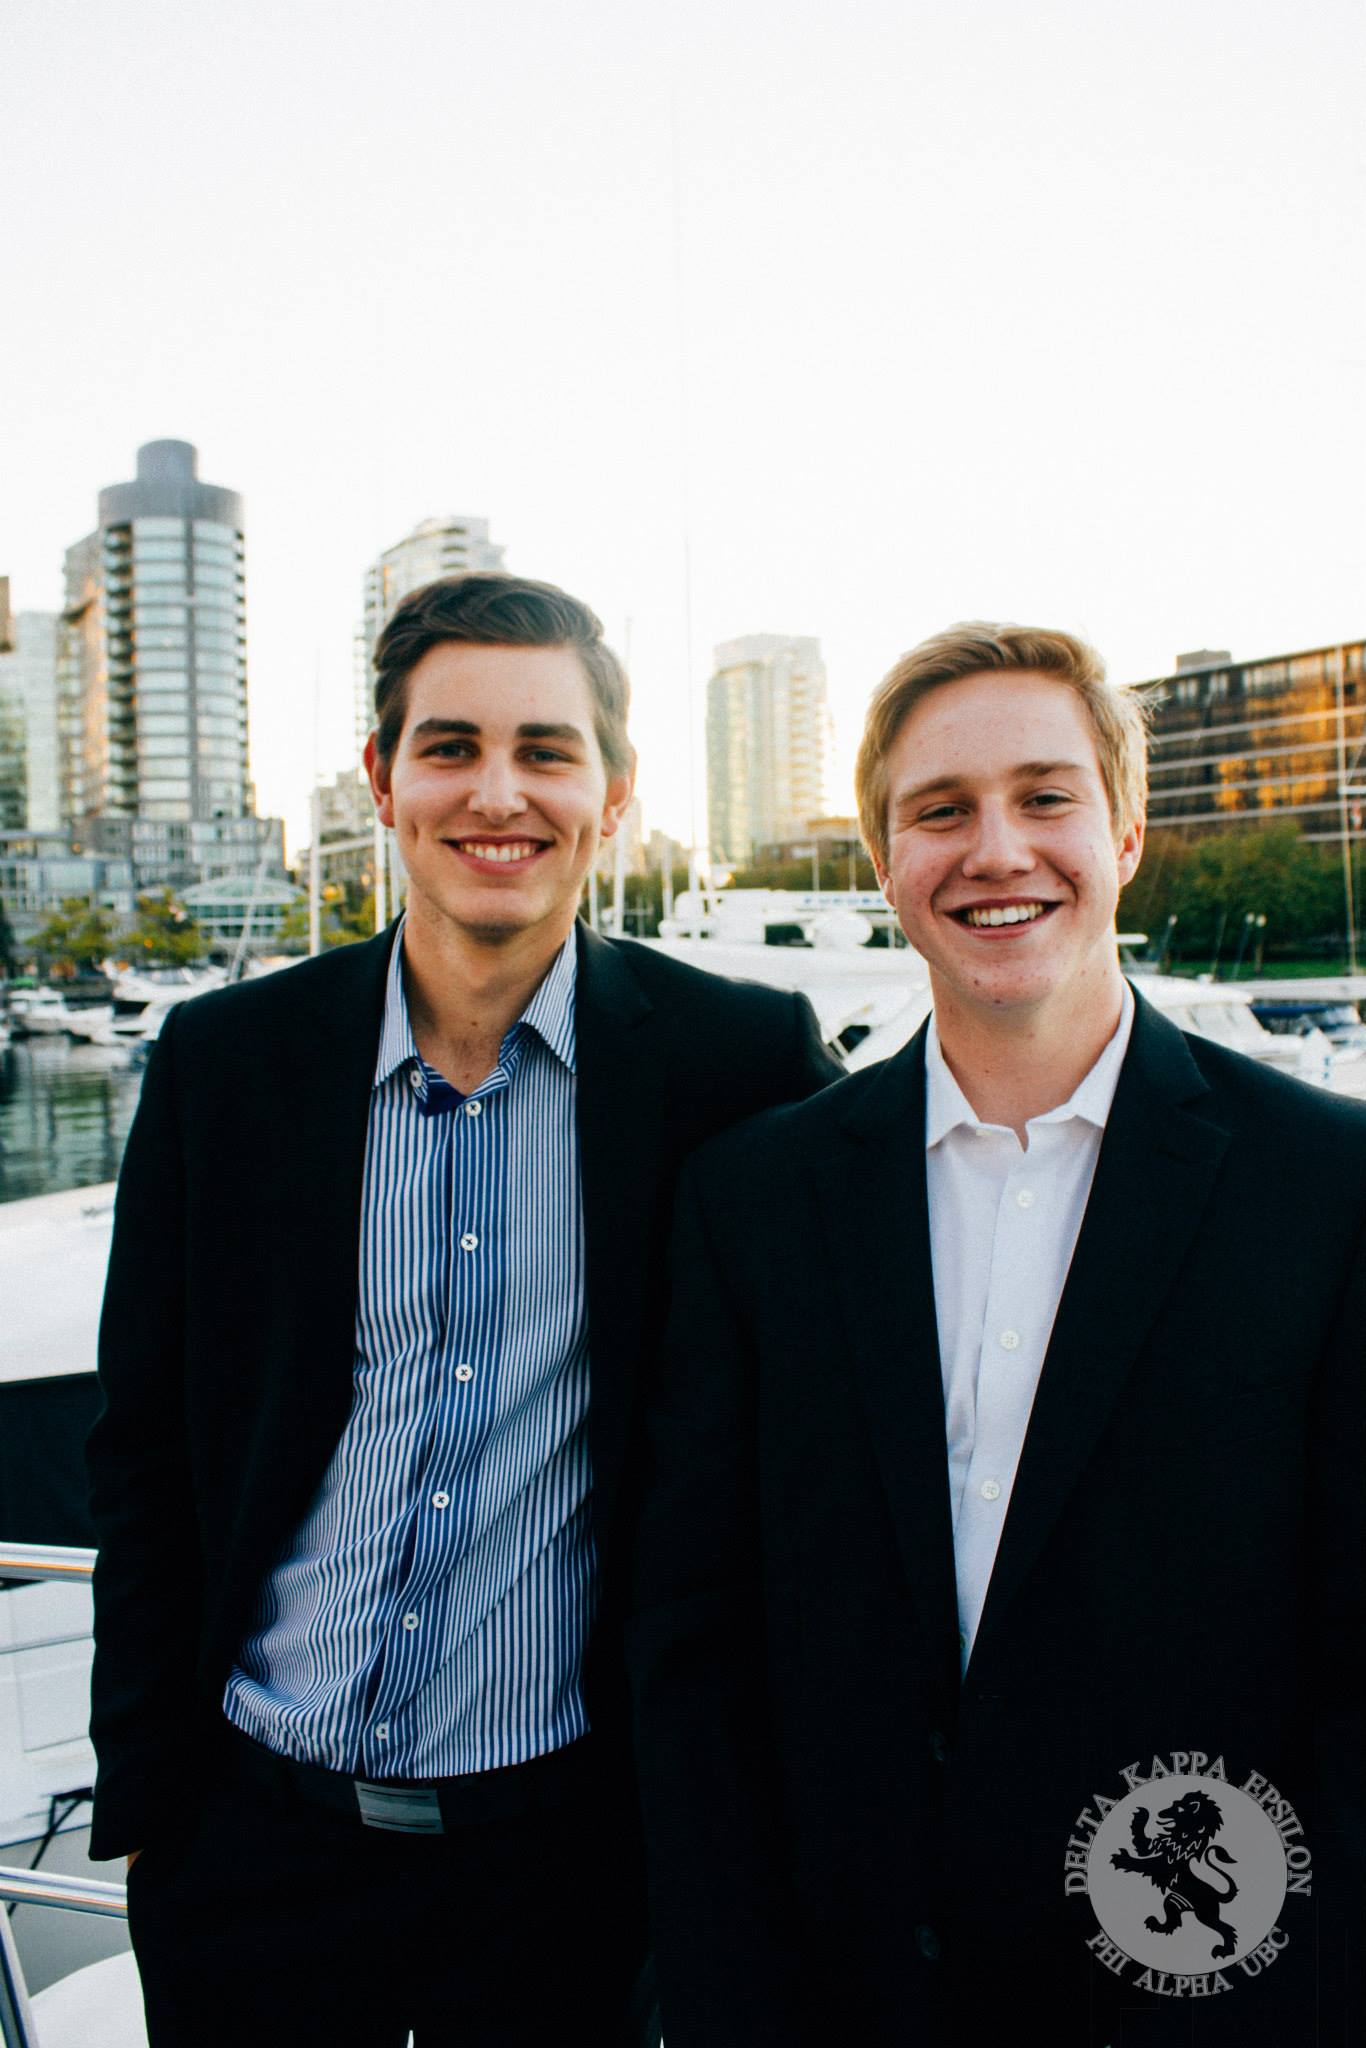 Brothers Wade and Scott cheesin at a rush event on Brother Sidwell's yacht.